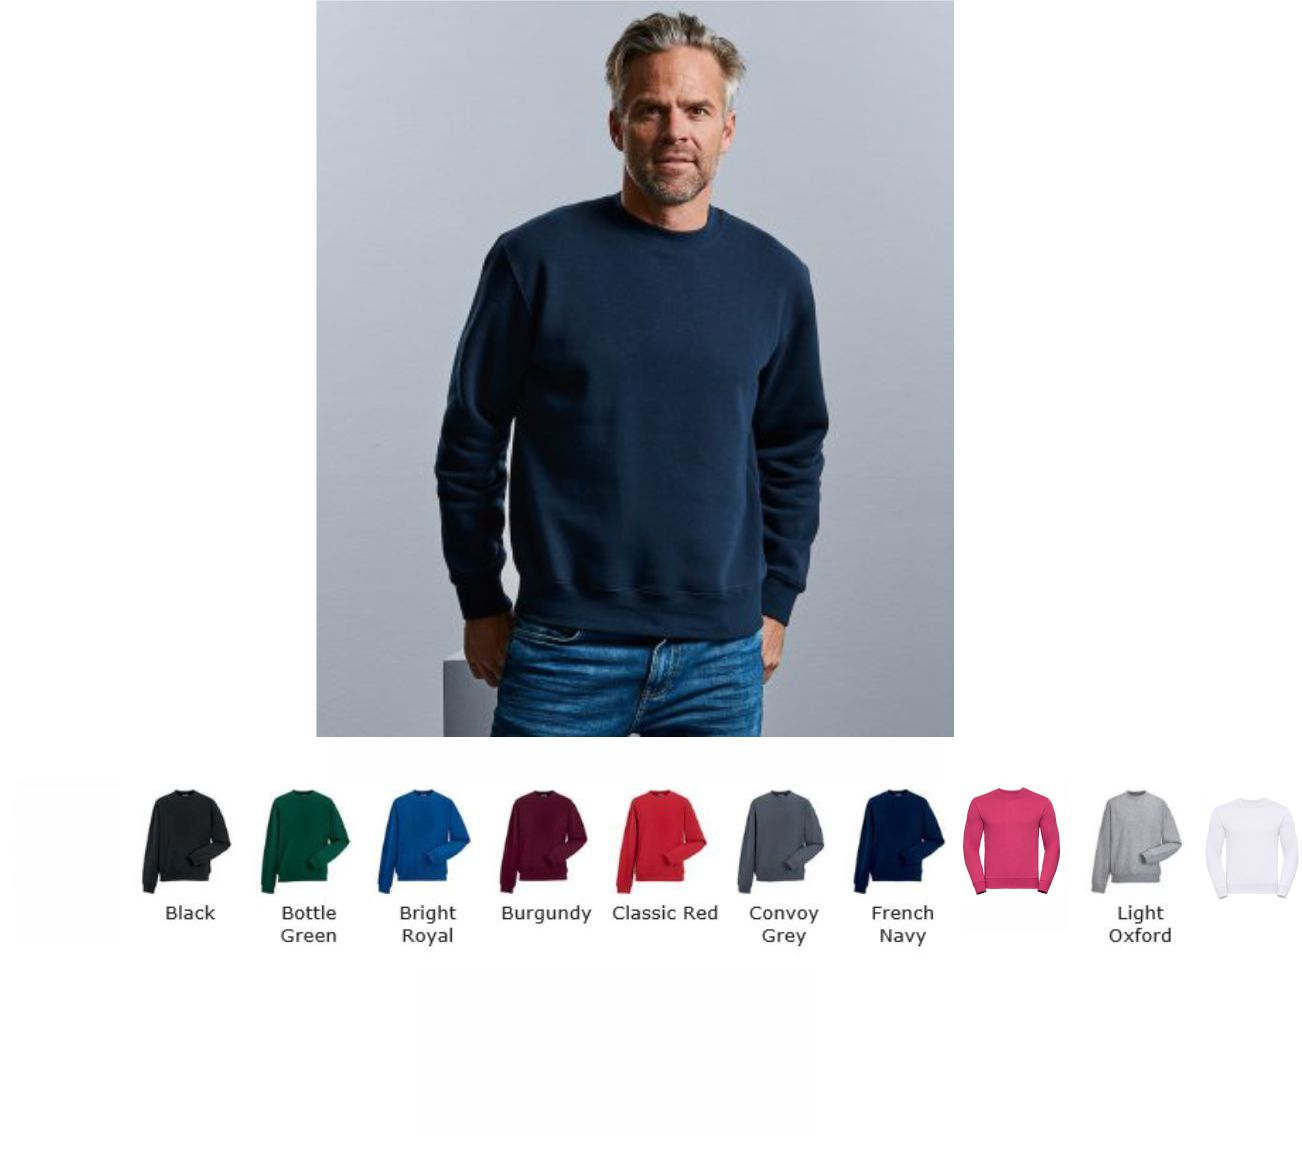 Russells 262M set in sleeve Sweatshirt